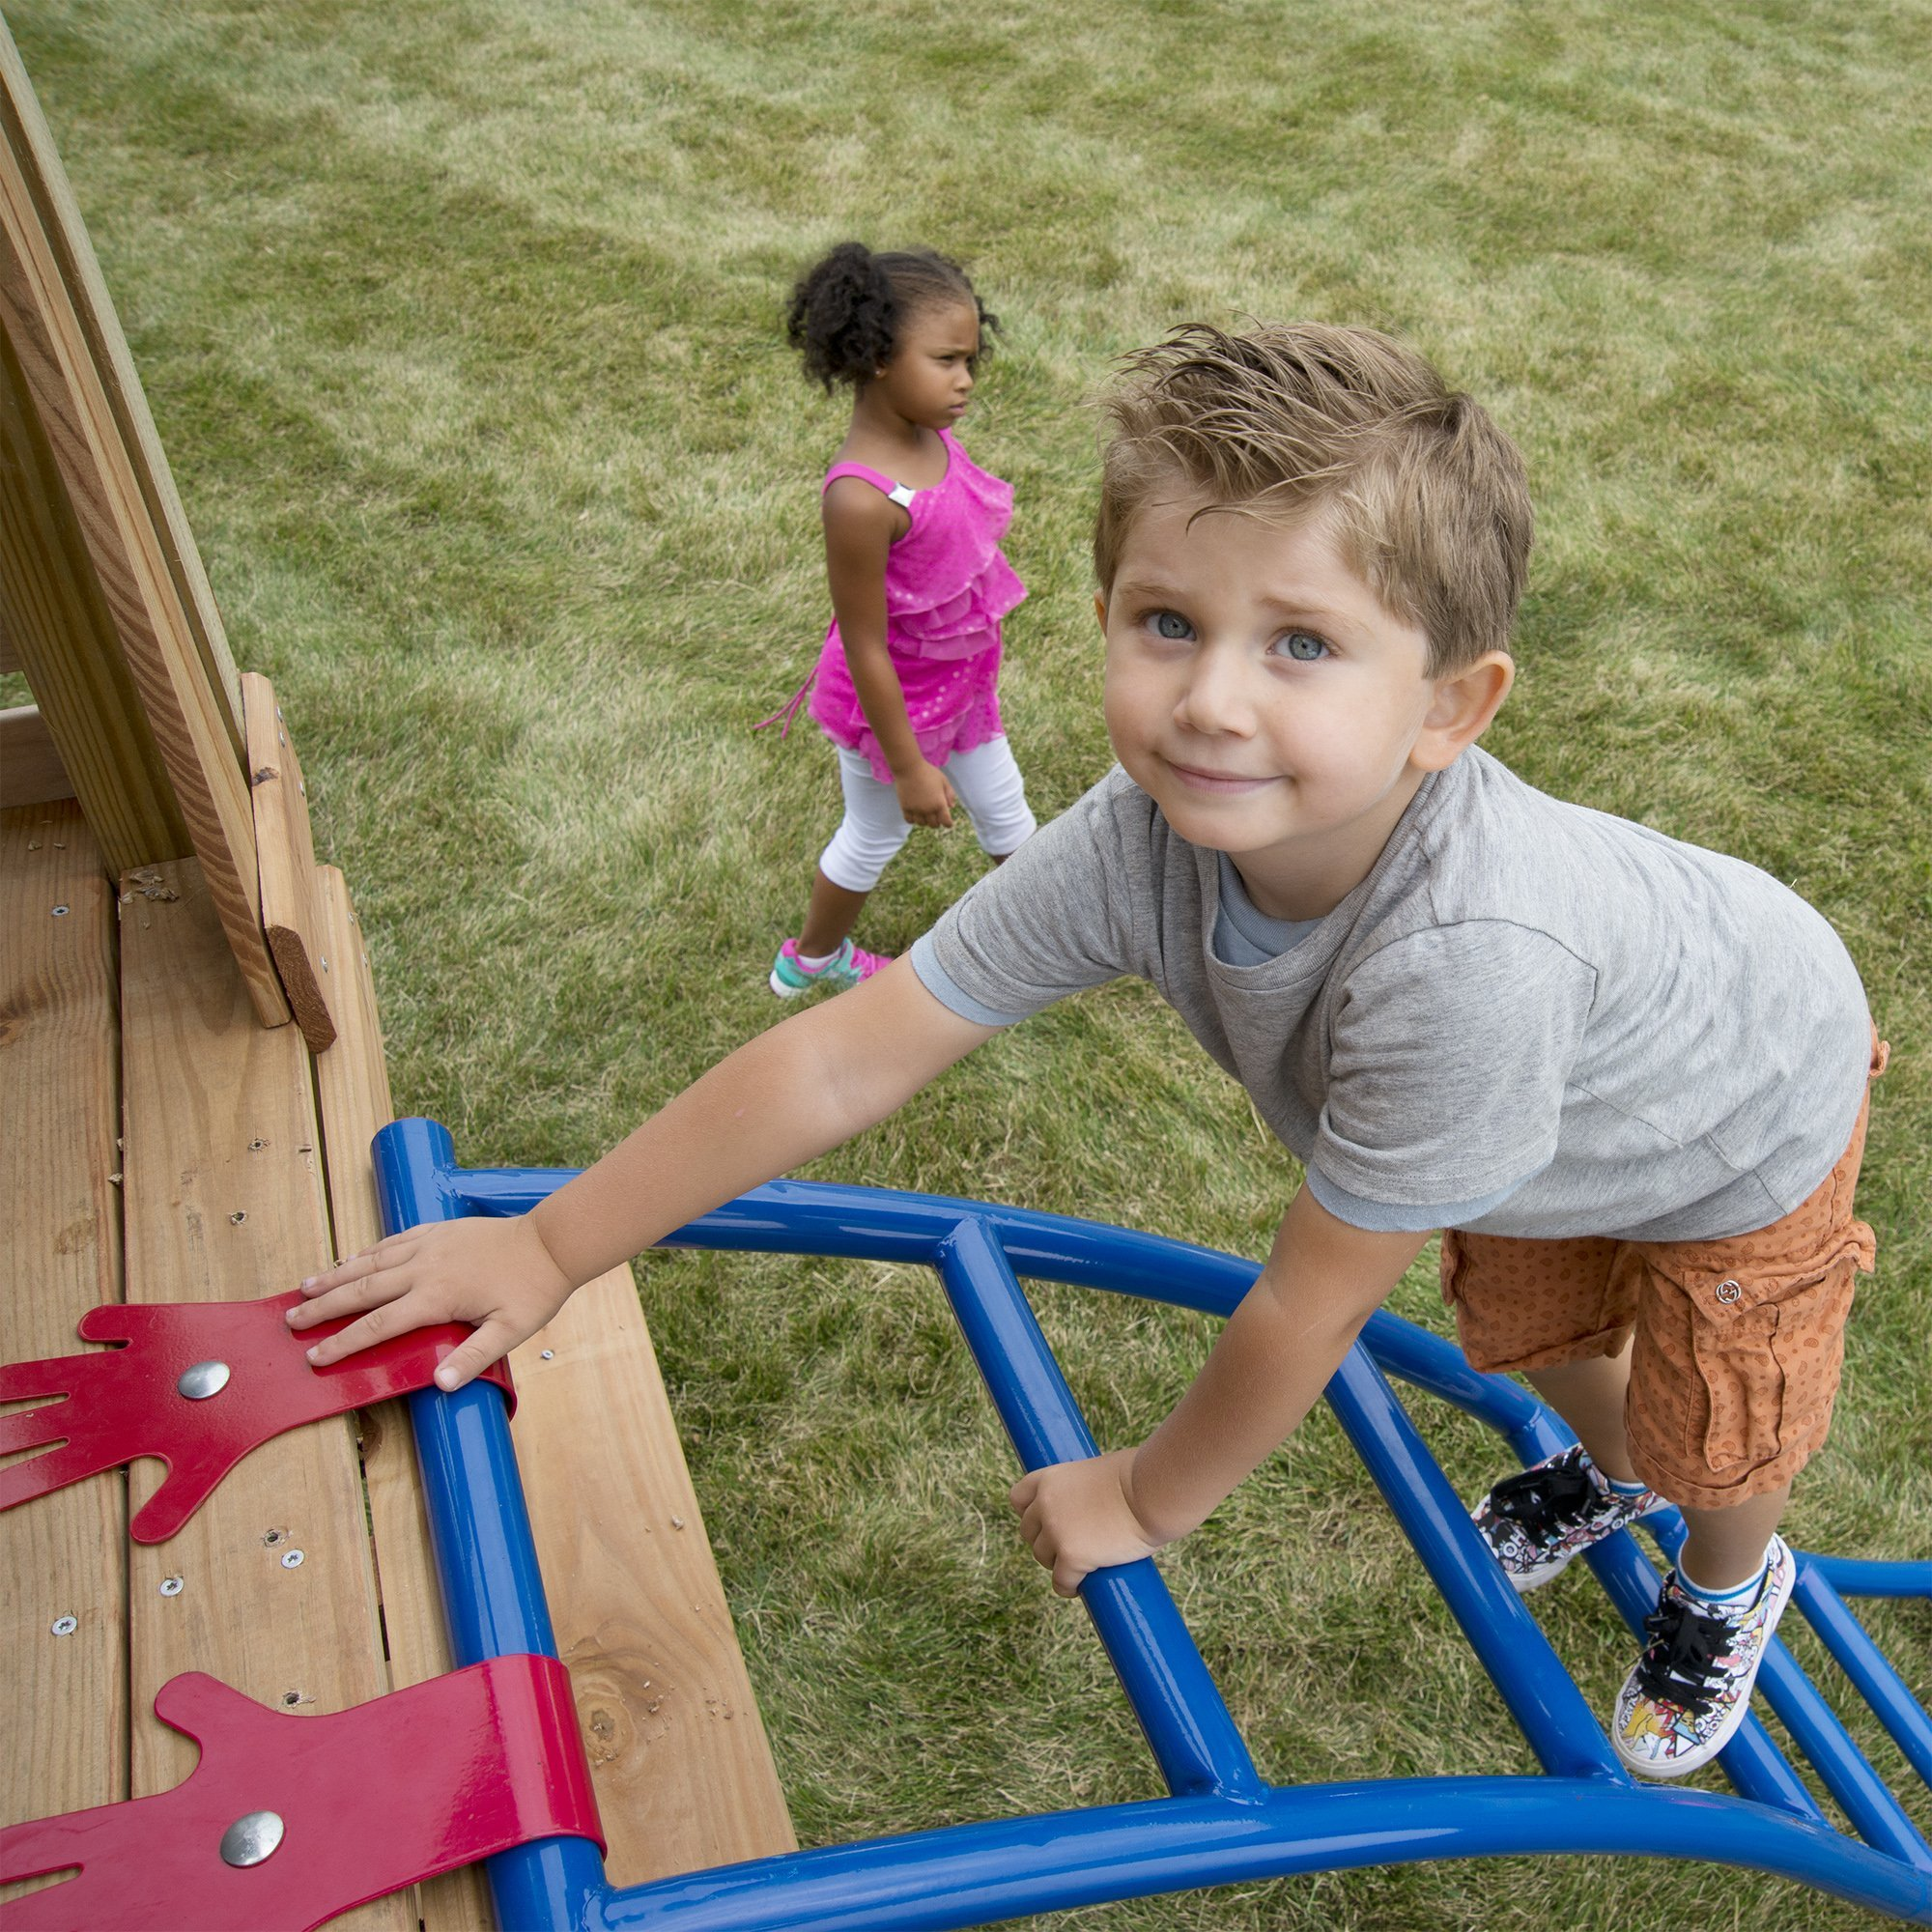 Swing-N-Slide NE 5040 Metal Arch Ladder with Multiple Configurations for Swing Sets, Play Sets & Playhouses, Blue & Red by Swing-N-Slide (Image #4)